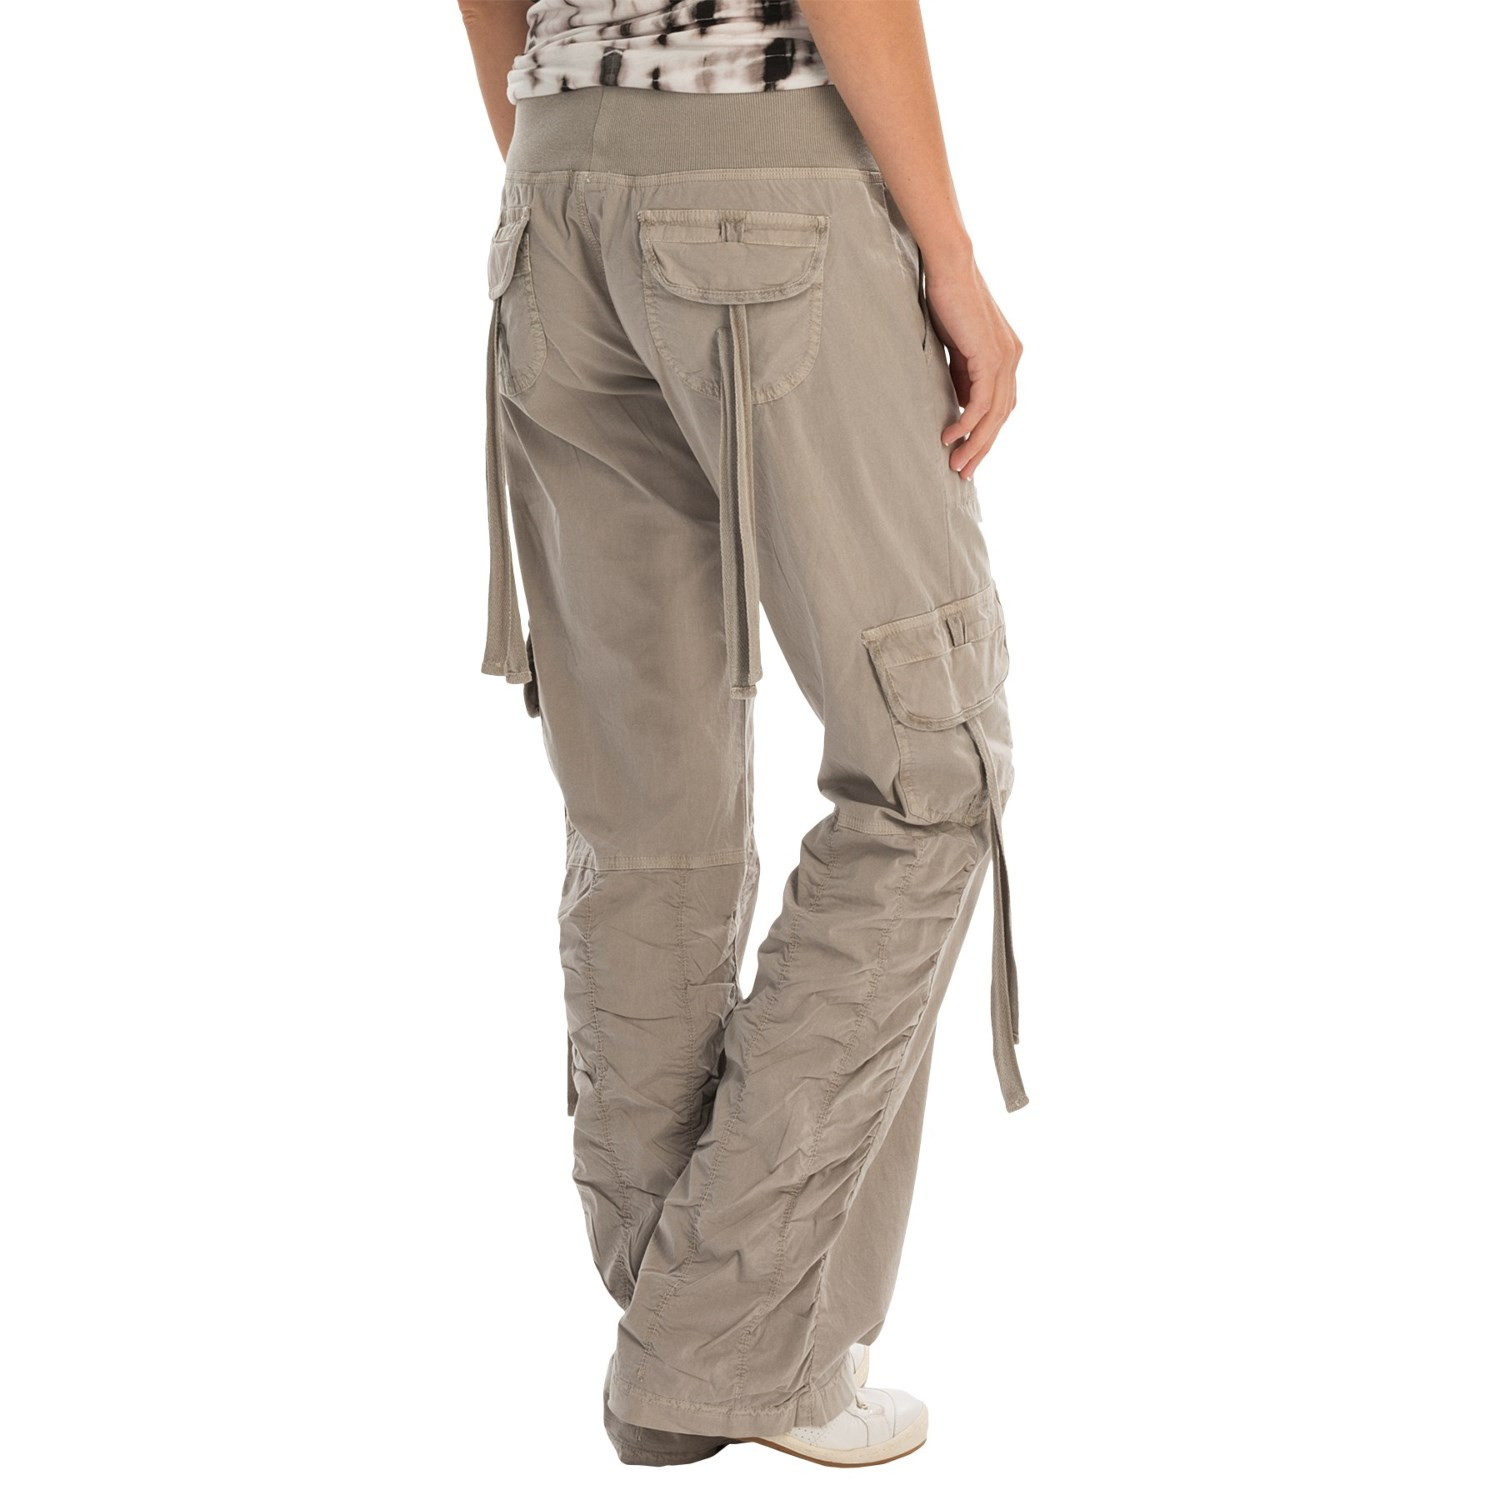 Cargo pants for girls fashion 49